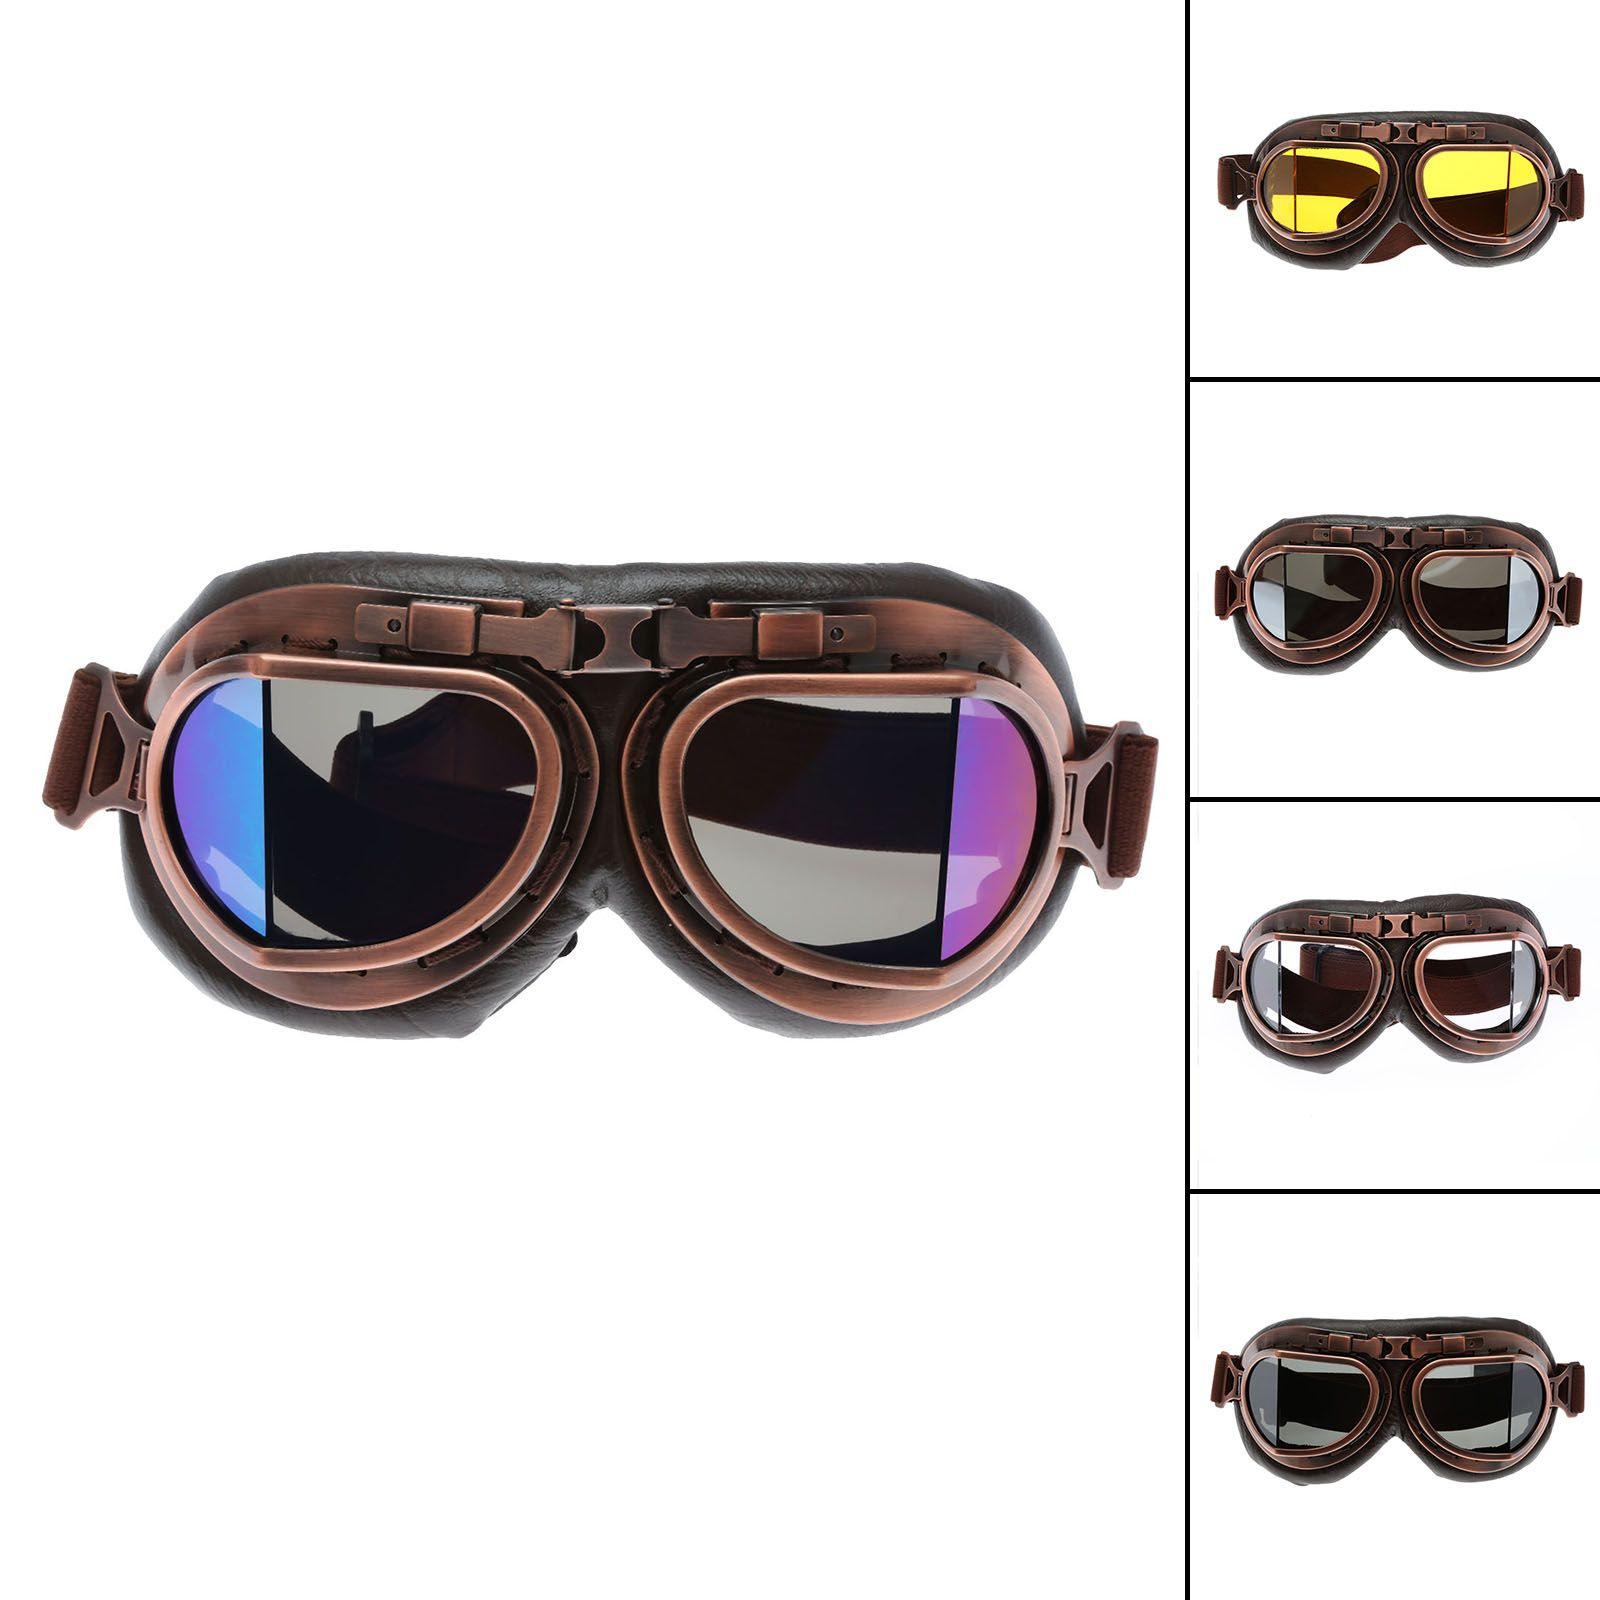 Motorcycle Goggles Glasses <font><b>Vintage</b></font> Motocross Classic Goggles Retro Aviator Pilot Cruiser Steampunk ATV Bike UV Protection Copper